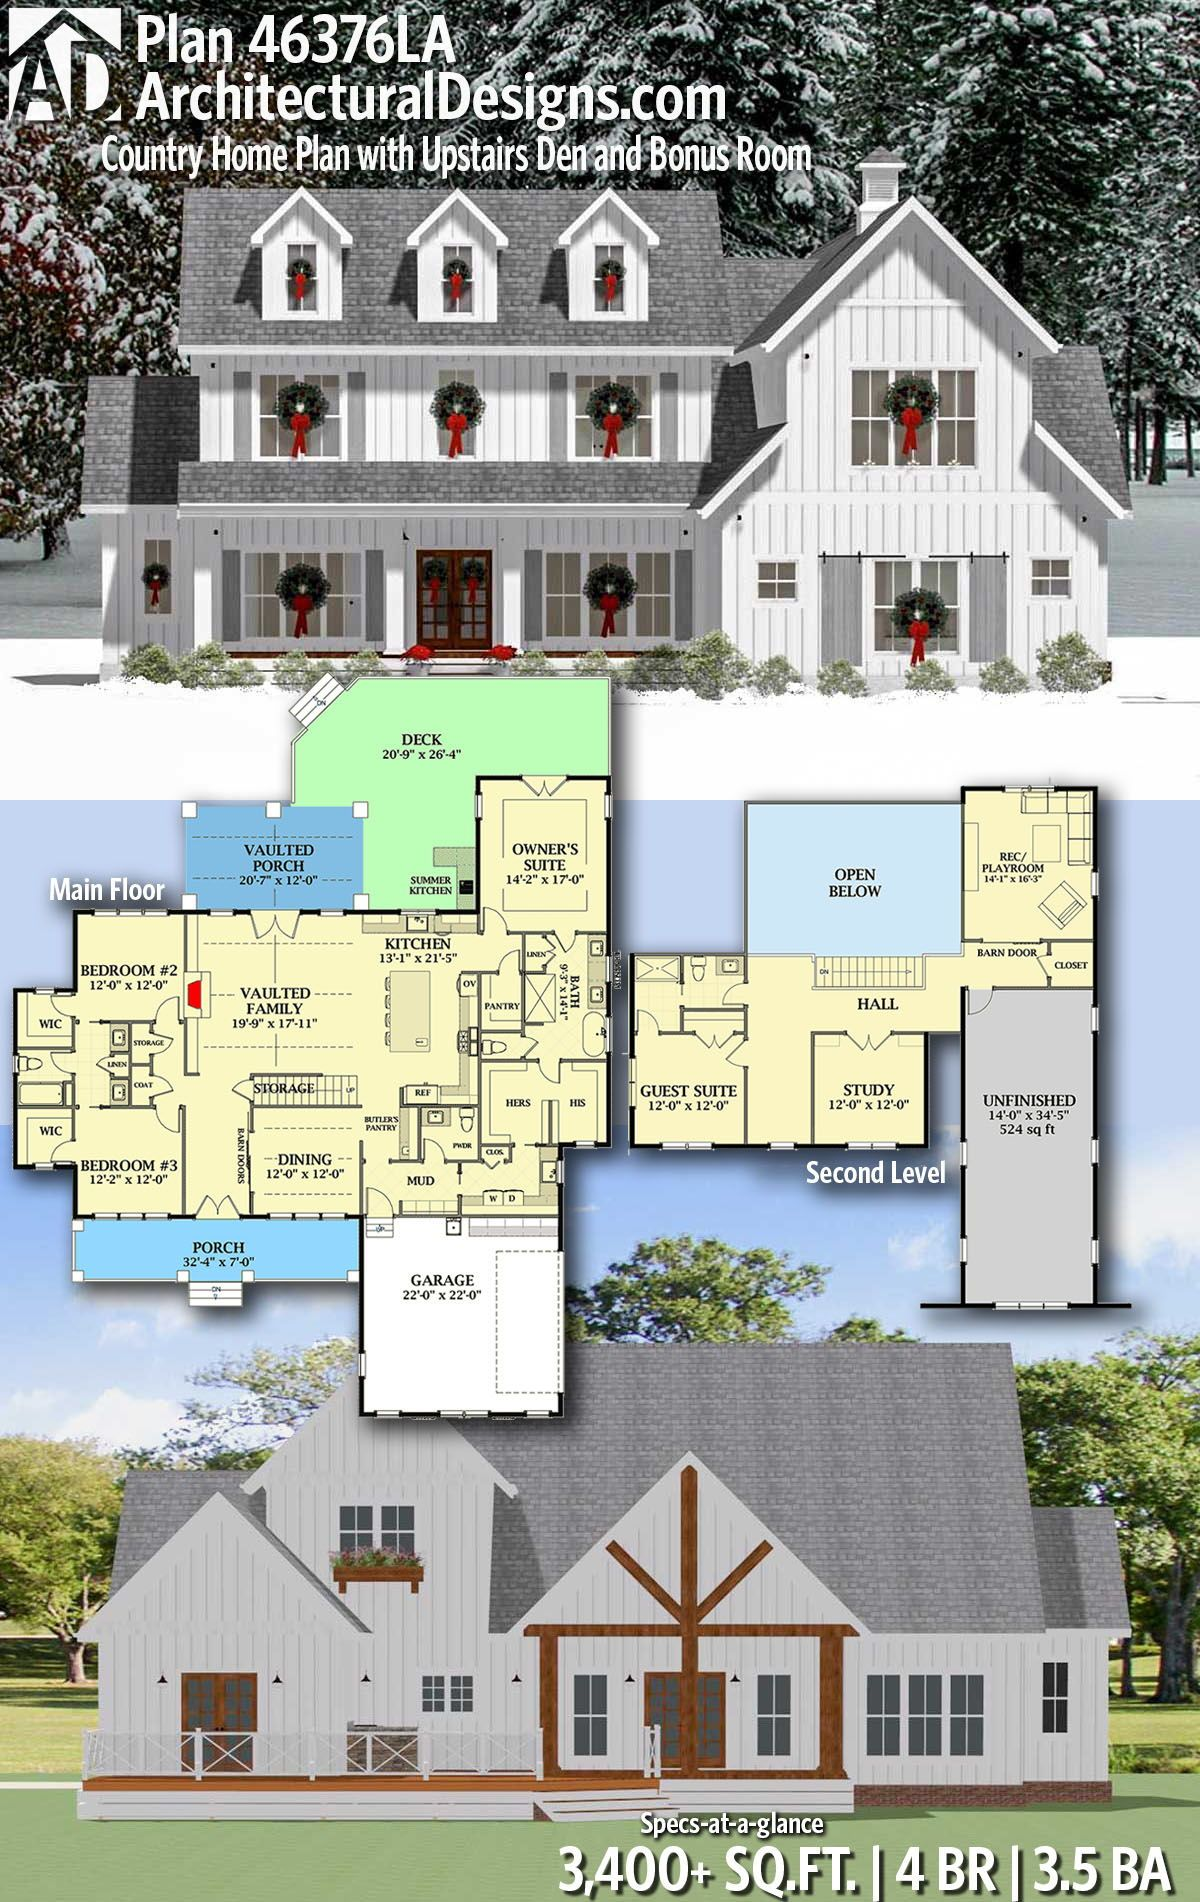 Plan 46376la Country Farmhouse Plan With Upstairs Den And Bonus Room House Plans Farmhouse Country House Plans New House Plans